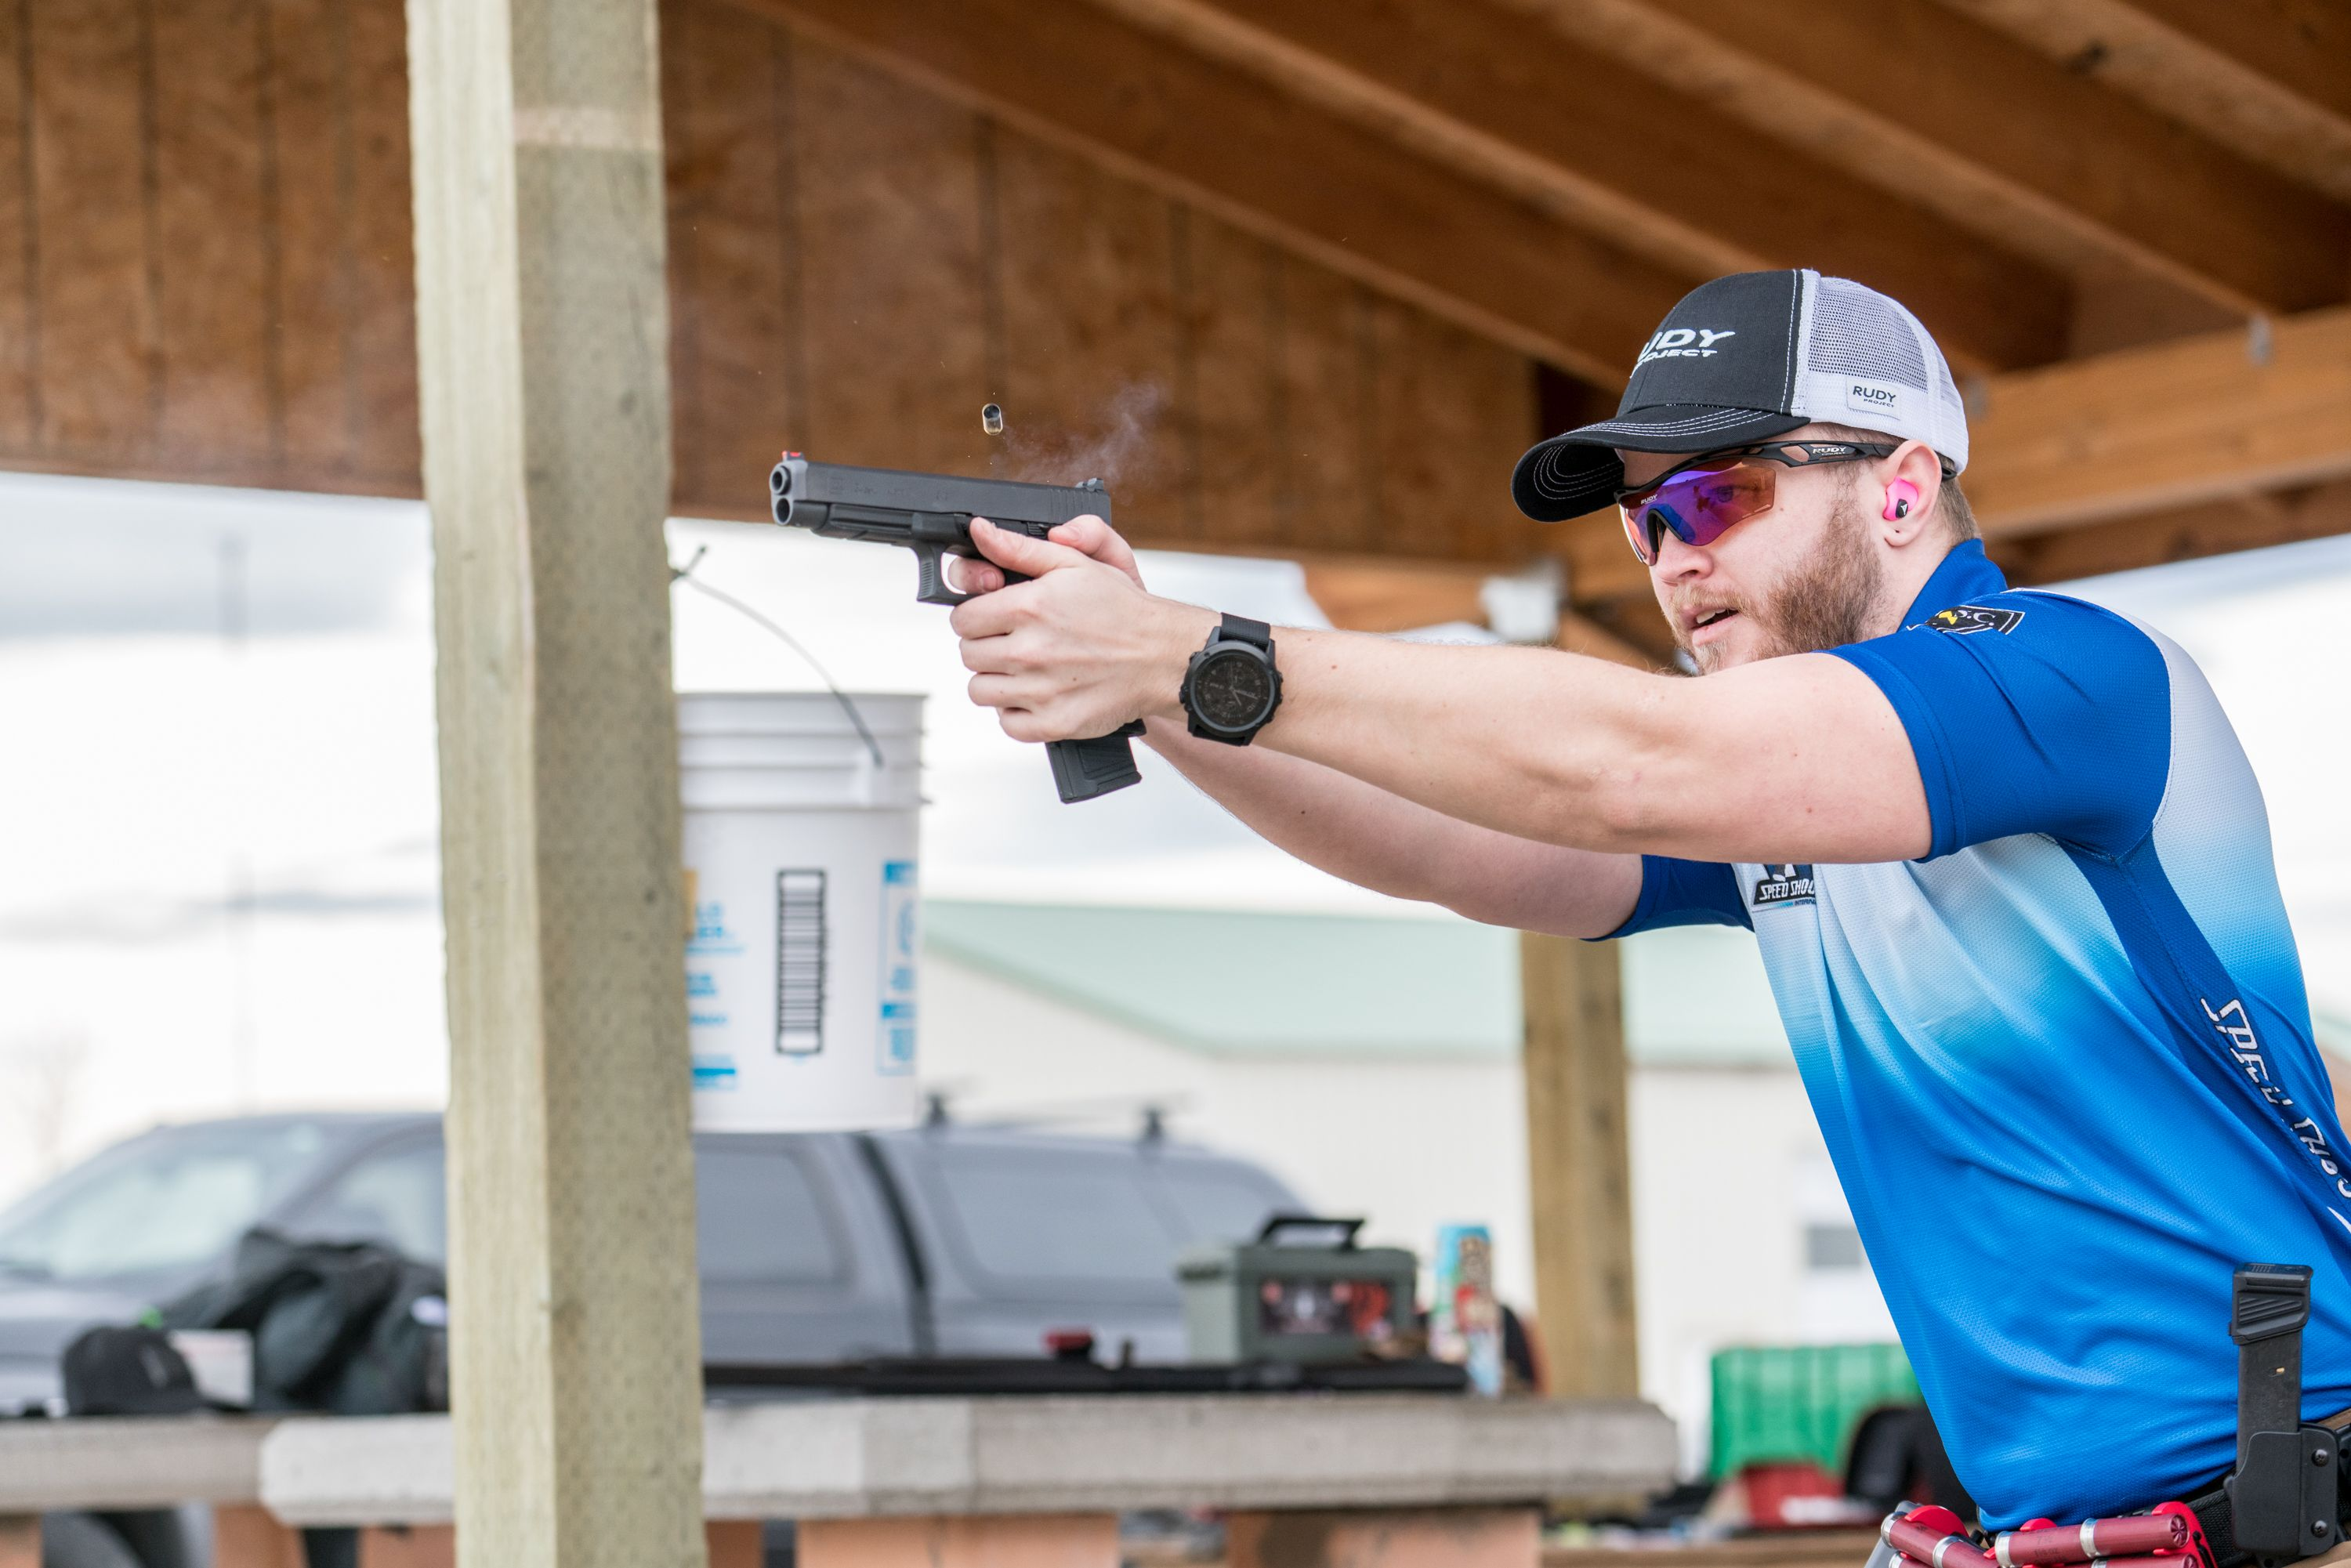 Police Product Test: The Rudy Project Tralyx Shooting Glasses Kit